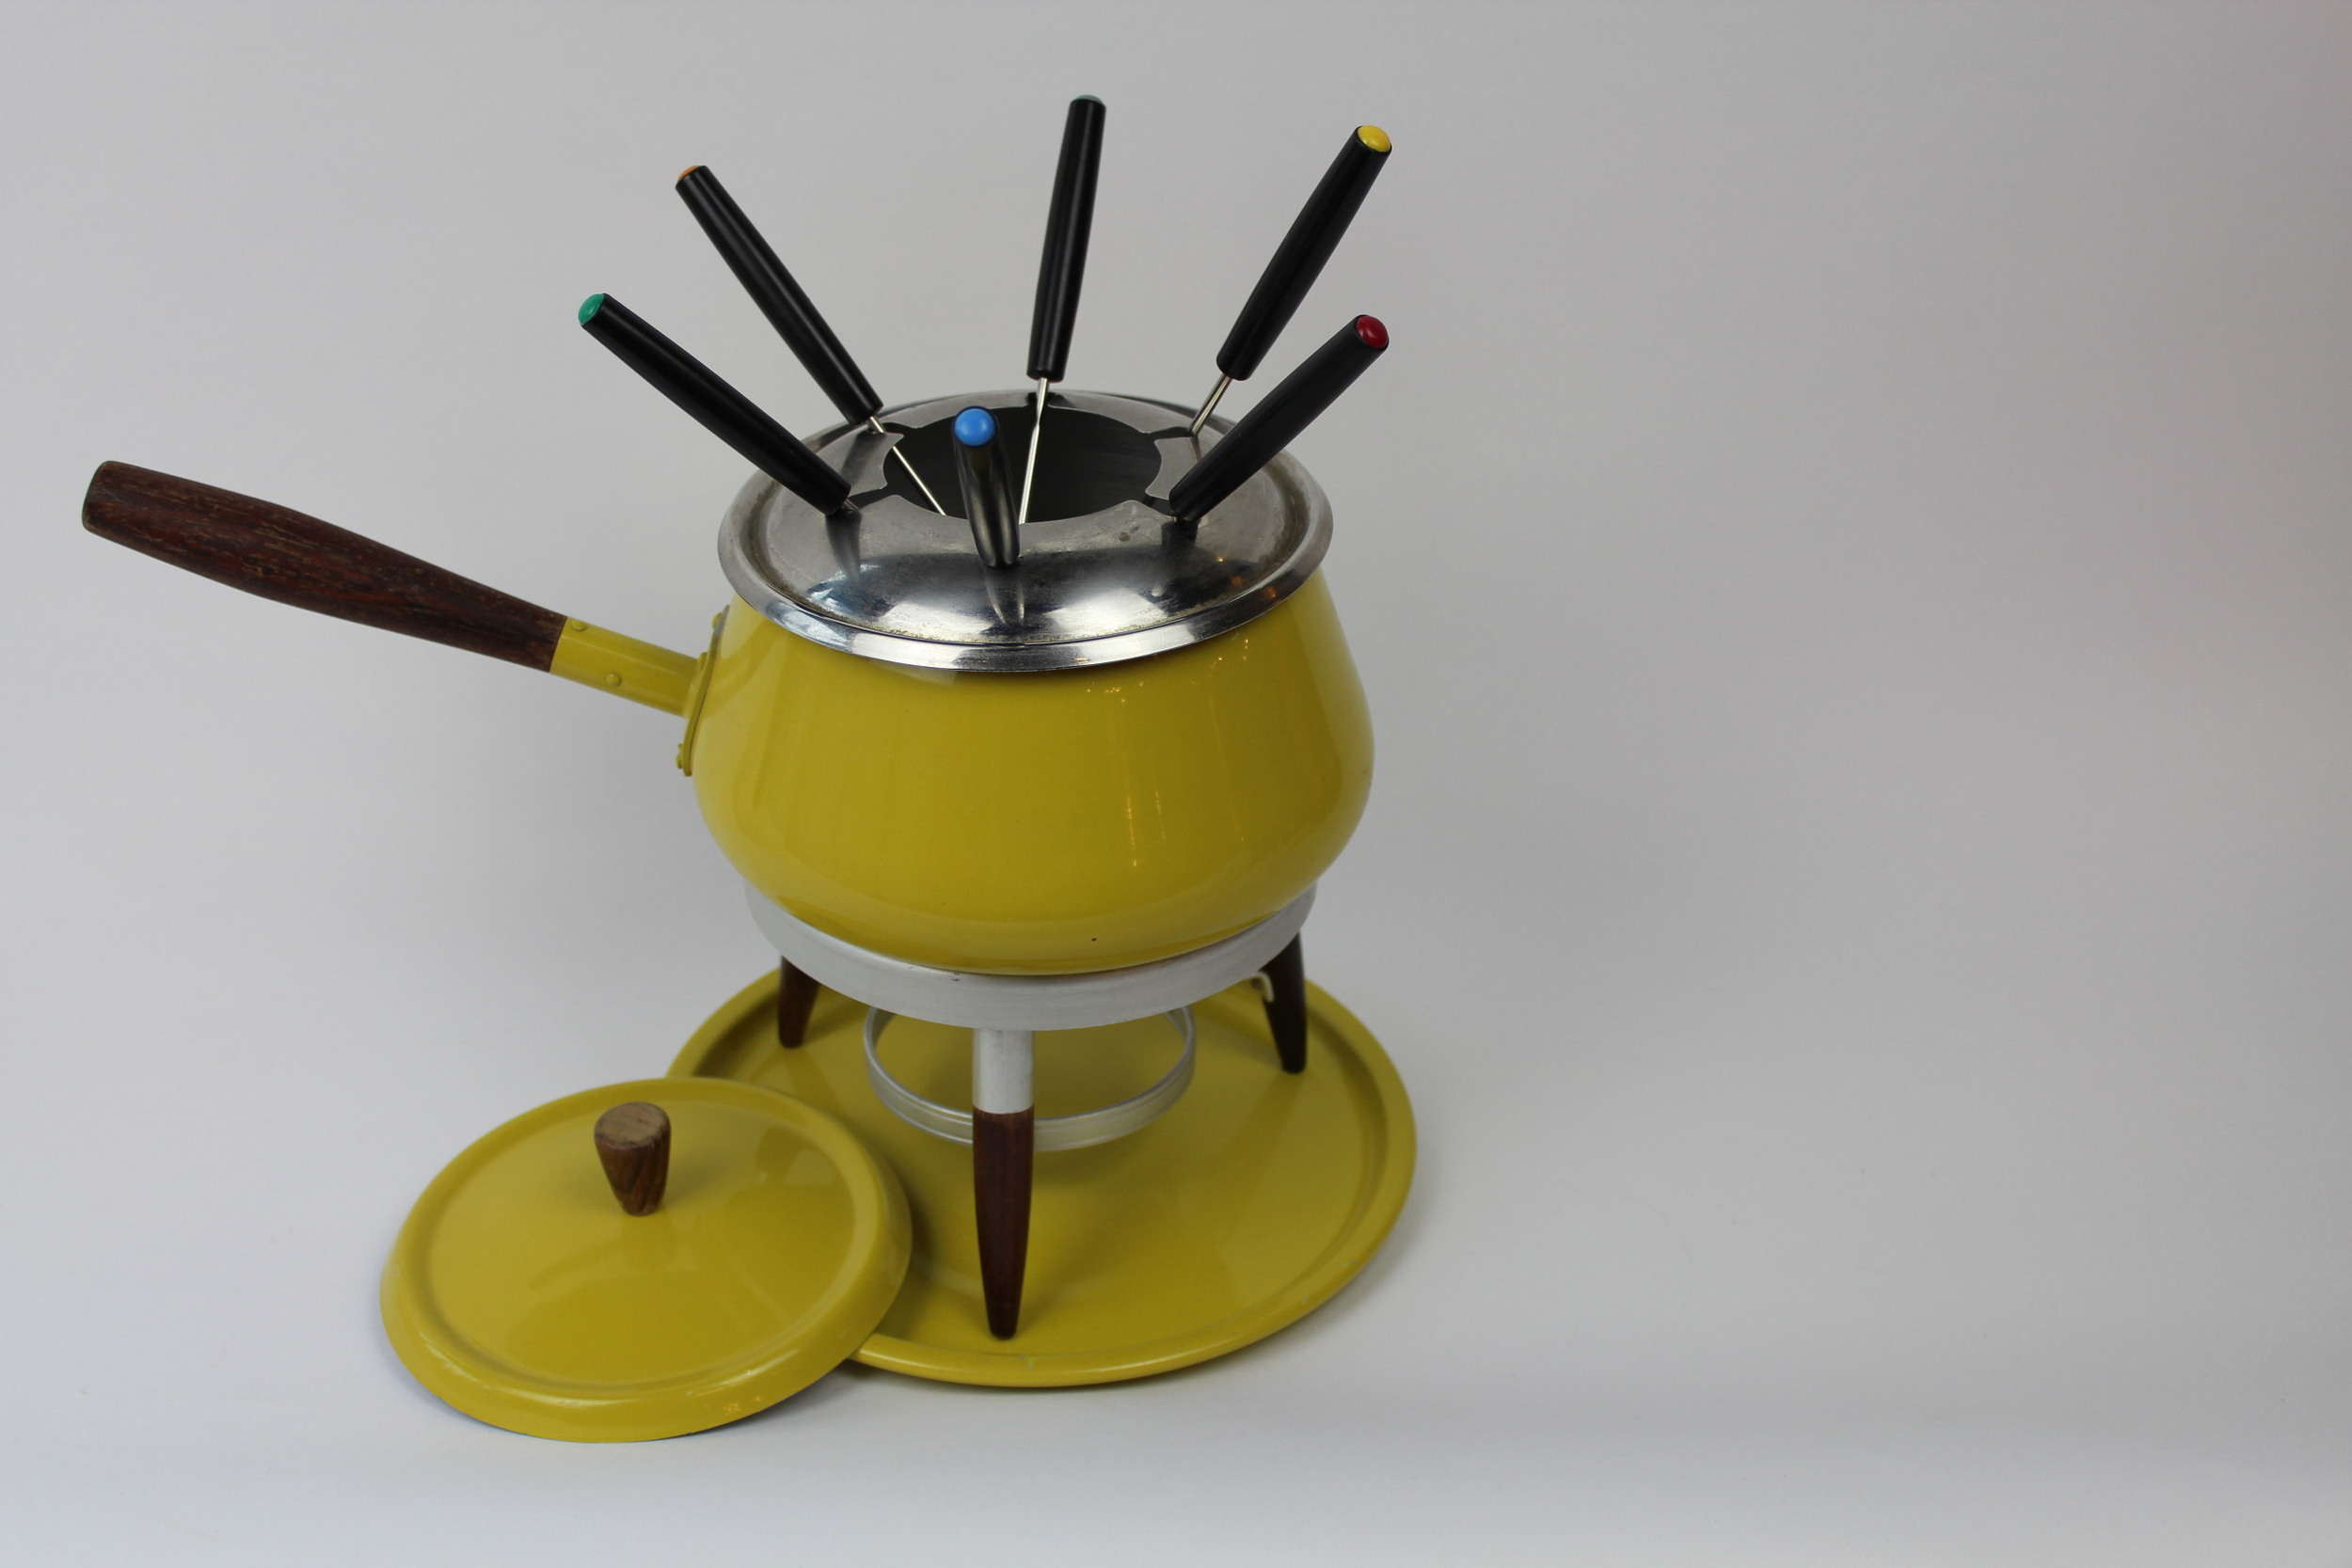 Vintage Fondue Pot and Forks